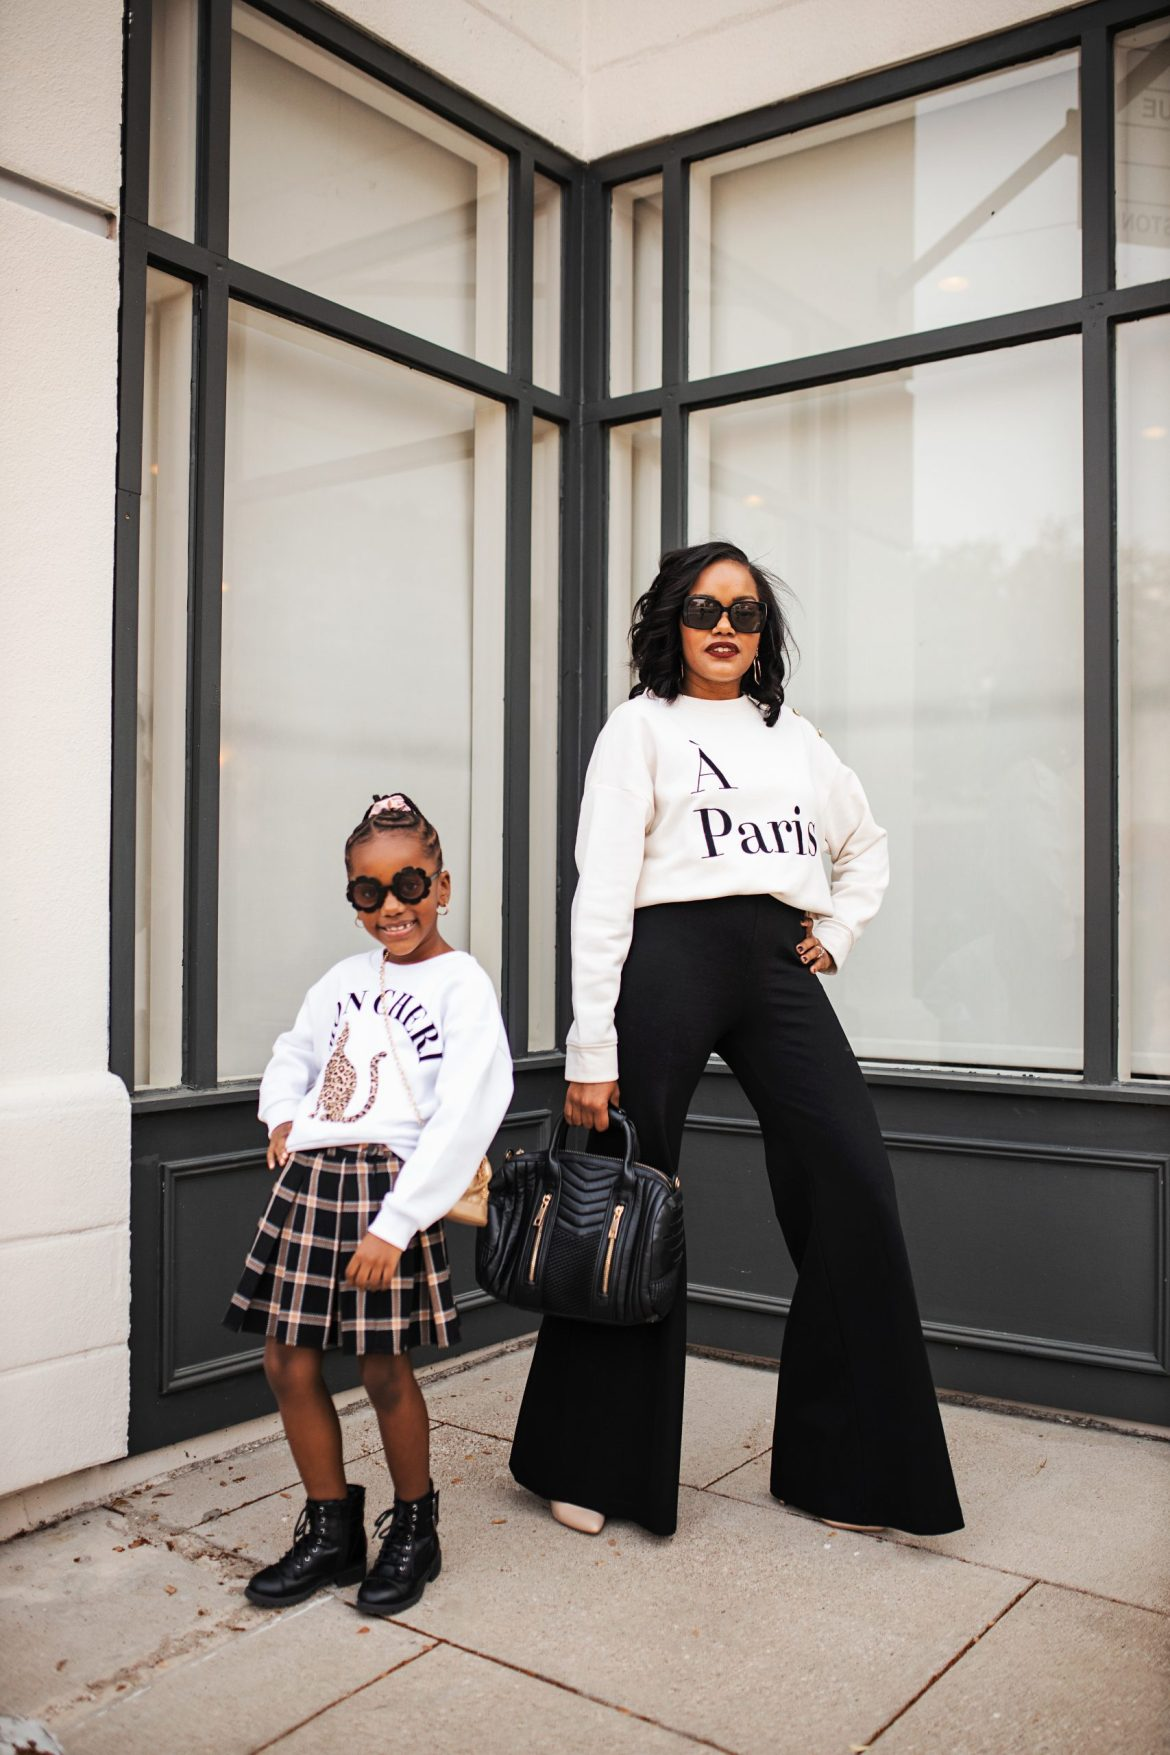 mommy and me outfit ideas, mommy goals black, mommy daughter outfits fall style, mommy daughter street stylegirls plaid skirt outfit idea, how to style mommy daughter looks, girls fall fashion, girls fall outfit ideas, affordable fall fashion, black mom blogger, dallas blogger, dallas fashion blogger, mommy daughter photography, mommy daughter outfits, mommy daughter photography black,